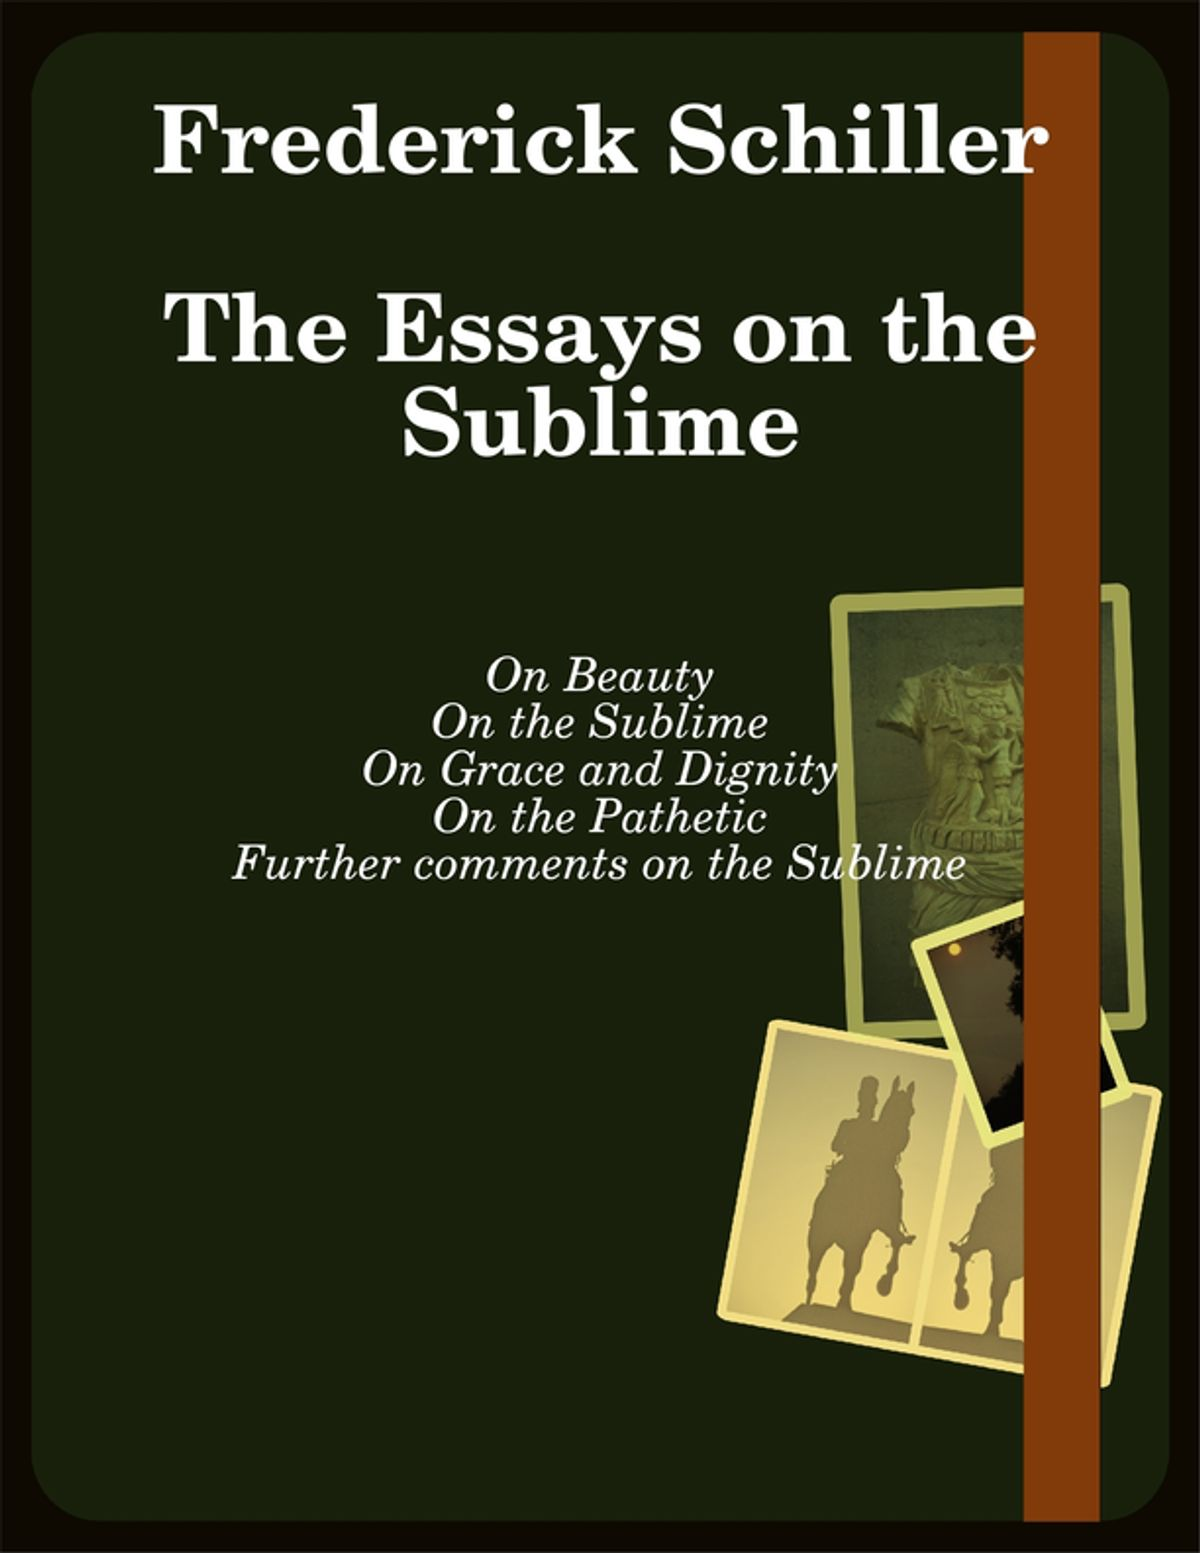 005 The Essays On Sublime Schiller Essay Awful Friedrich Full